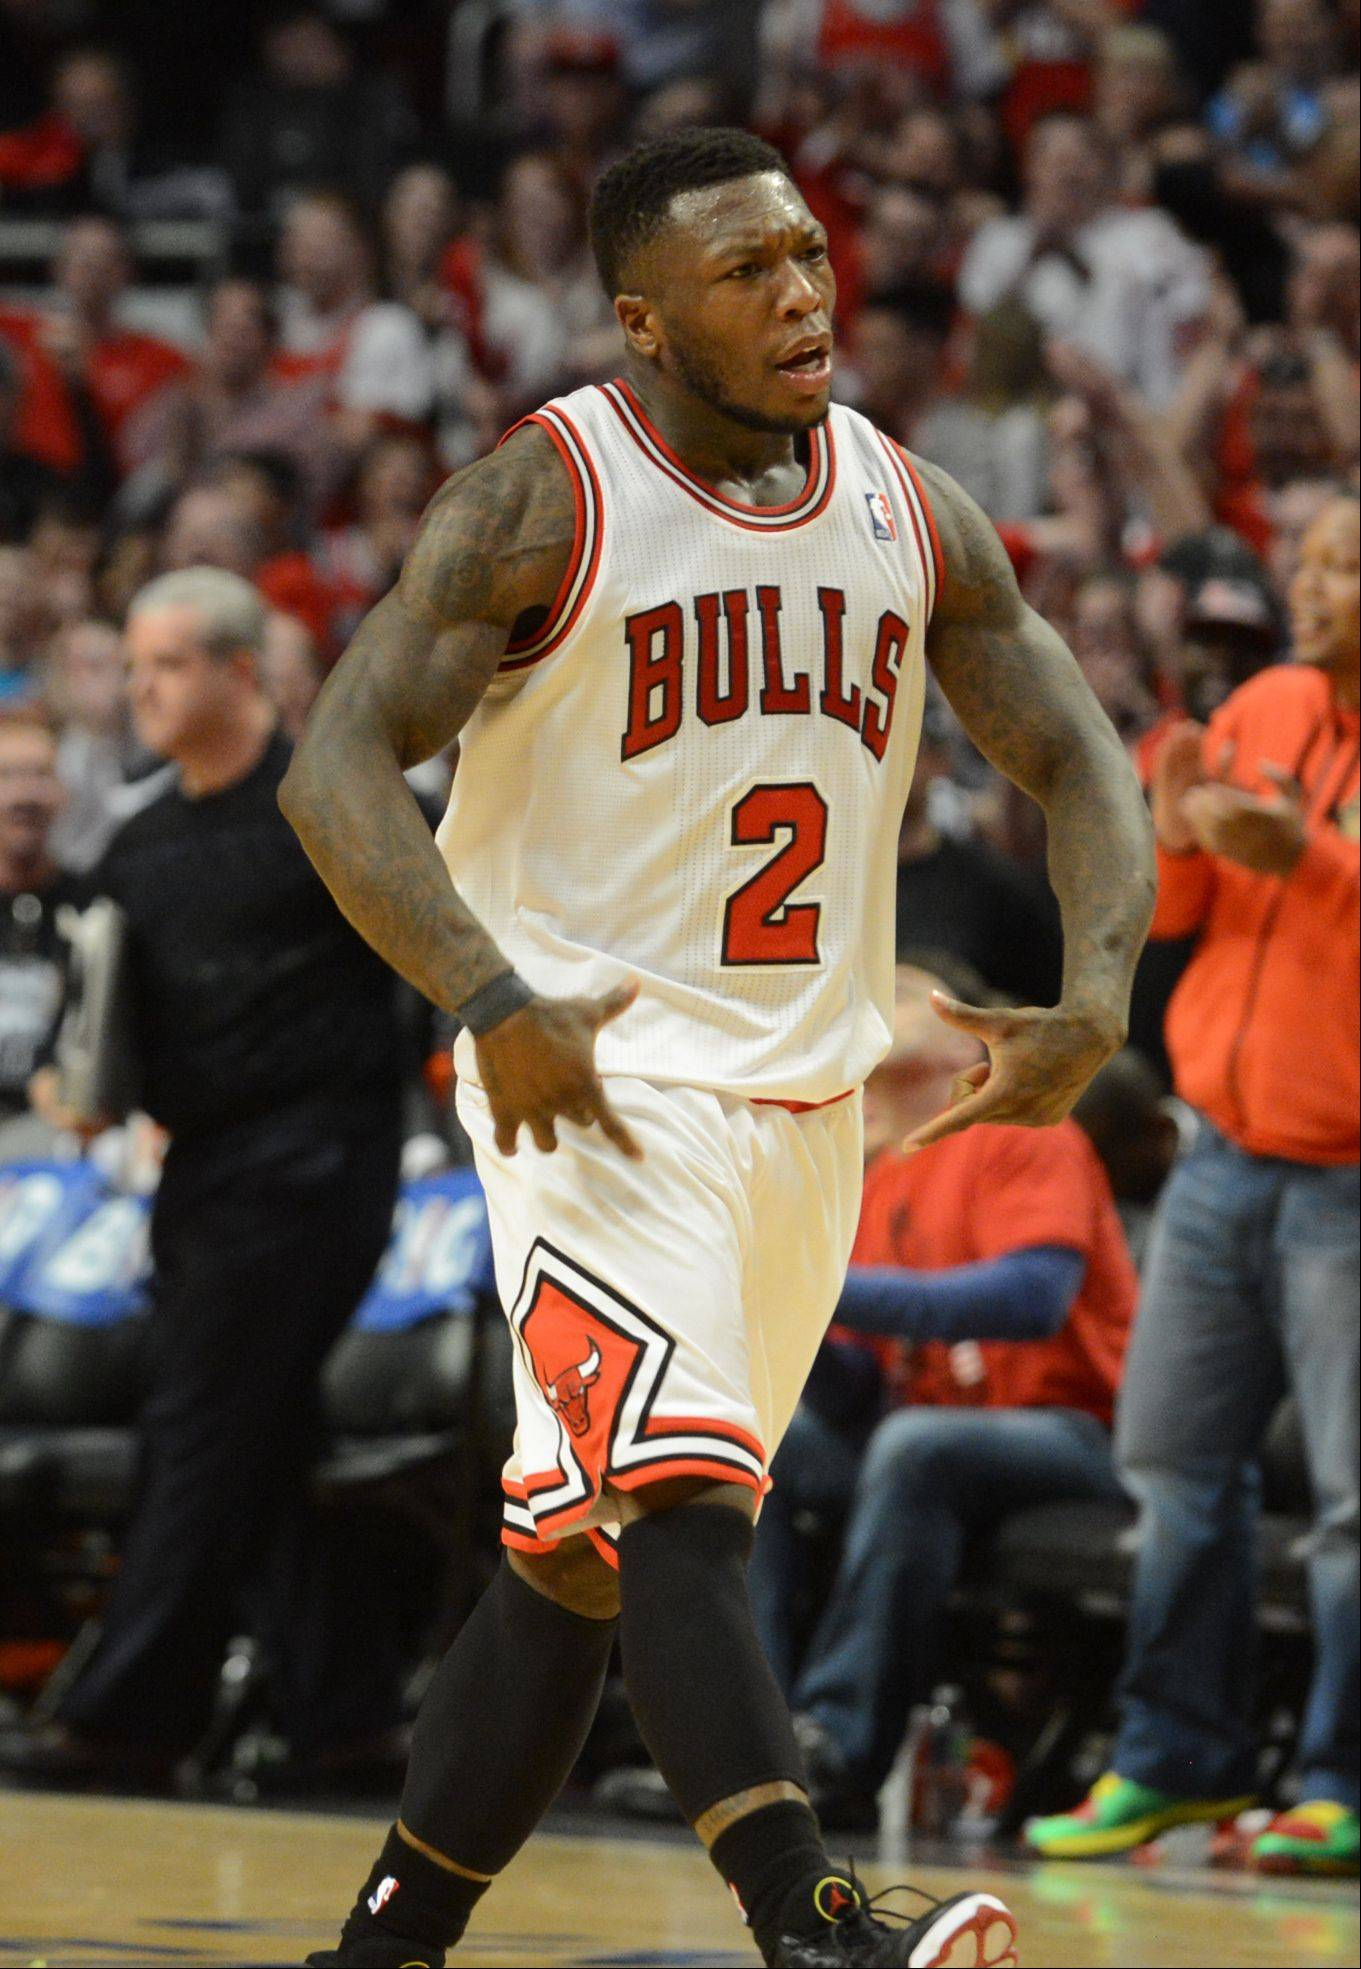 The Bulls Nate Robinson is all pumped up after sinking another basket in overtime Saturday during game 4 of the first round playoff game against the Brooklyn Nets at the United Center. The Bulls won in triple overtime 142-134